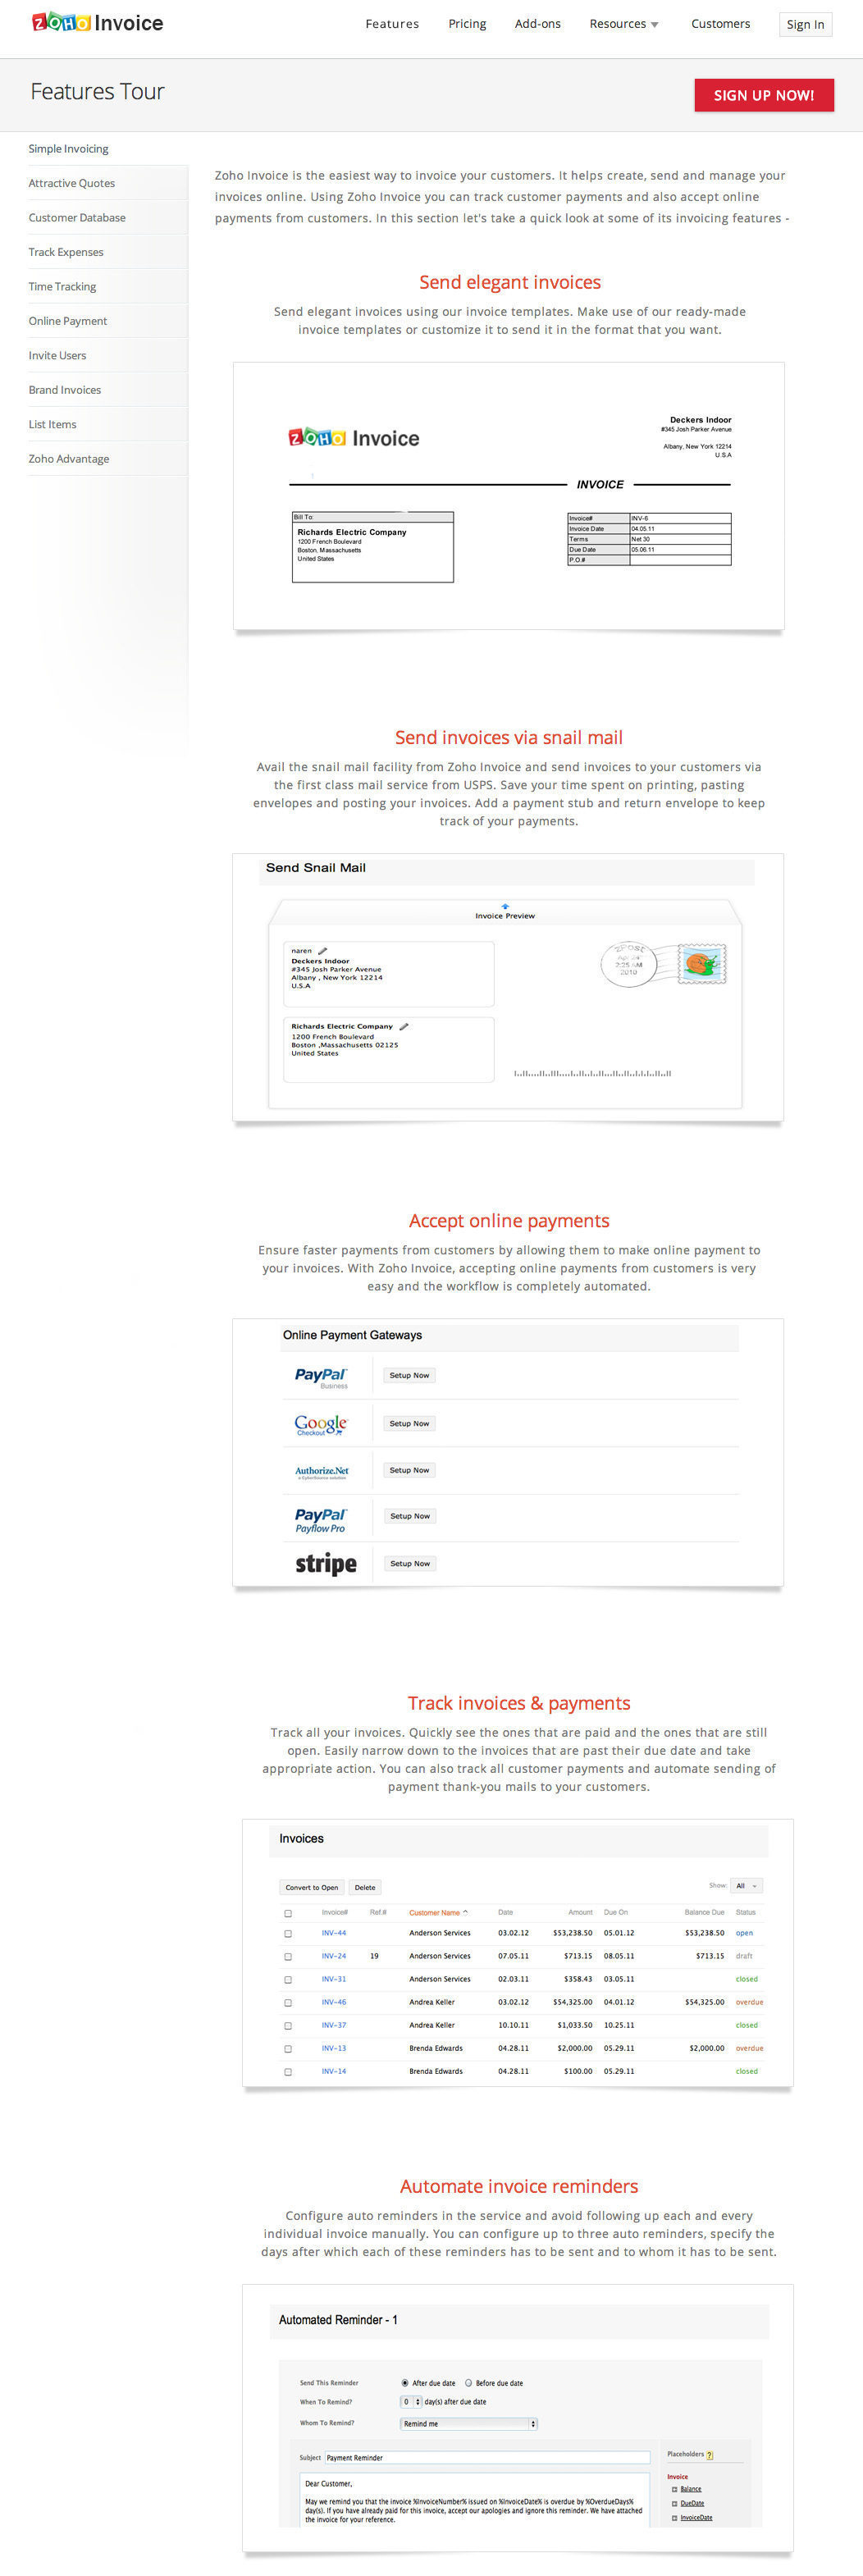 Reliefworkersus  Sweet Top  Complaints And Reviews About Zoho Invoice With Extraordinary Zoho Invoice Pricing Zoho Invoice  Simple Invoicing  With Delightful Simple Invoices Templates Also Invoice Price On Car In Addition Drupal Commerce Invoice And How To Calculate Invoice Price As Well As Plumber Invoice Template Additionally How Do I Send An Invoice From Consumeraffairscom With Reliefworkersus  Extraordinary Top  Complaints And Reviews About Zoho Invoice With Delightful Zoho Invoice Pricing Zoho Invoice  Simple Invoicing  And Sweet Simple Invoices Templates Also Invoice Price On Car In Addition Drupal Commerce Invoice From Consumeraffairscom